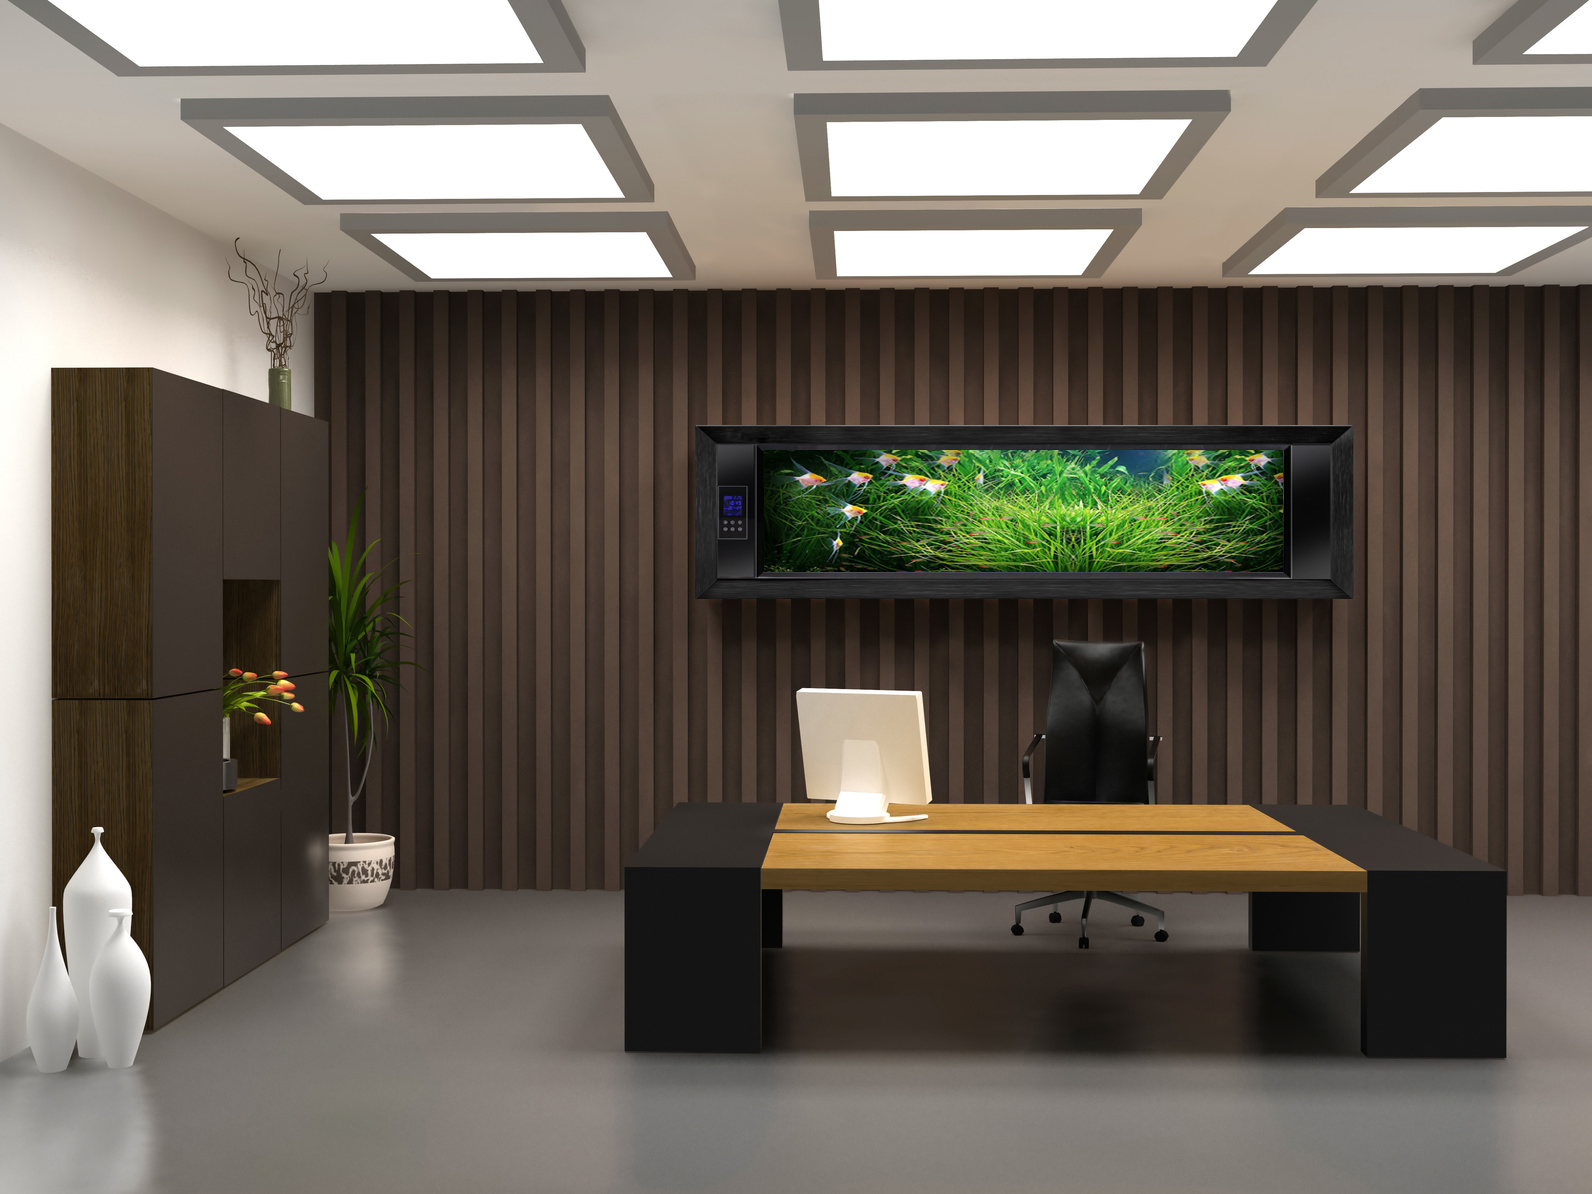 Elegant ceo office design bellisima for Modern interior design for office